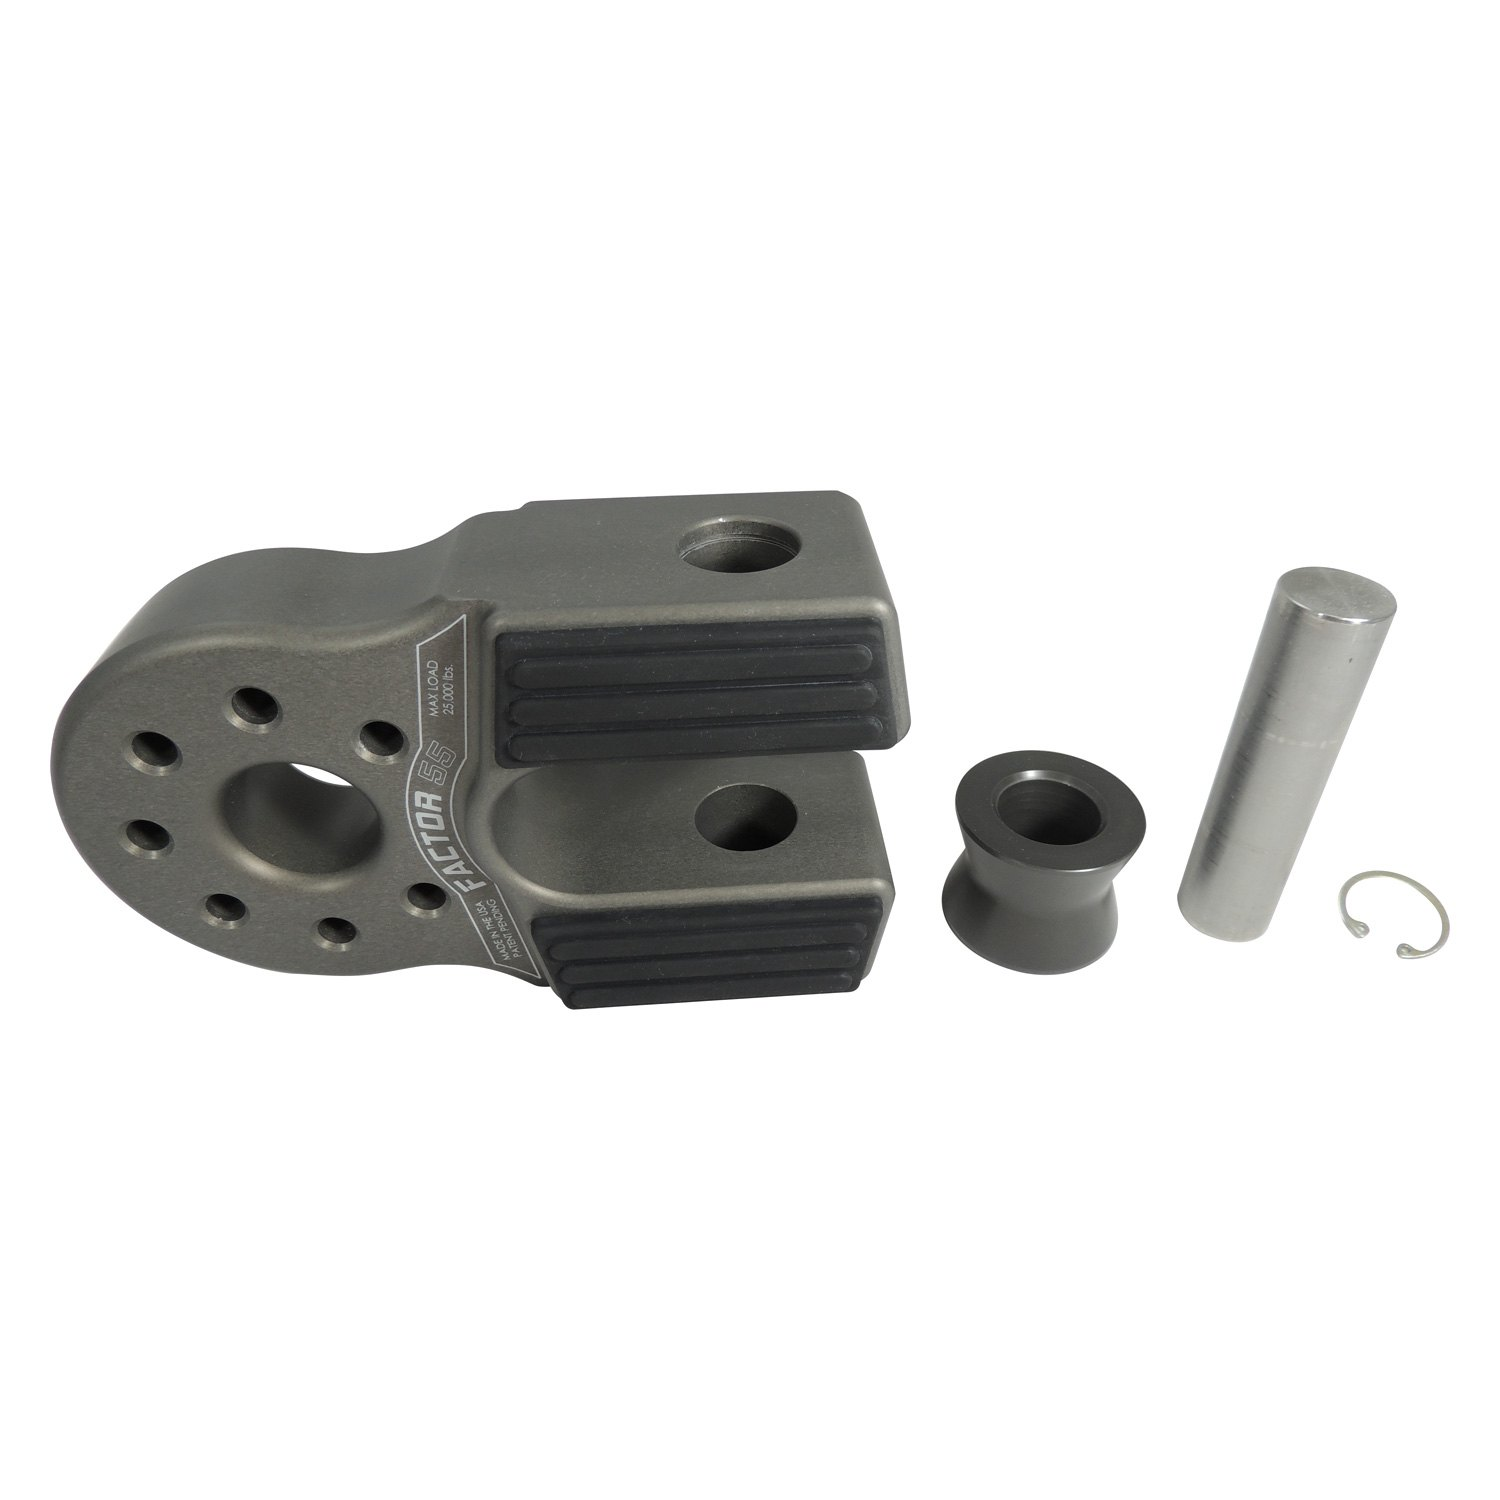 Factor 55 00090-06 FlatLink XXL Winch Shackle Mount Assembly Anodized Gray